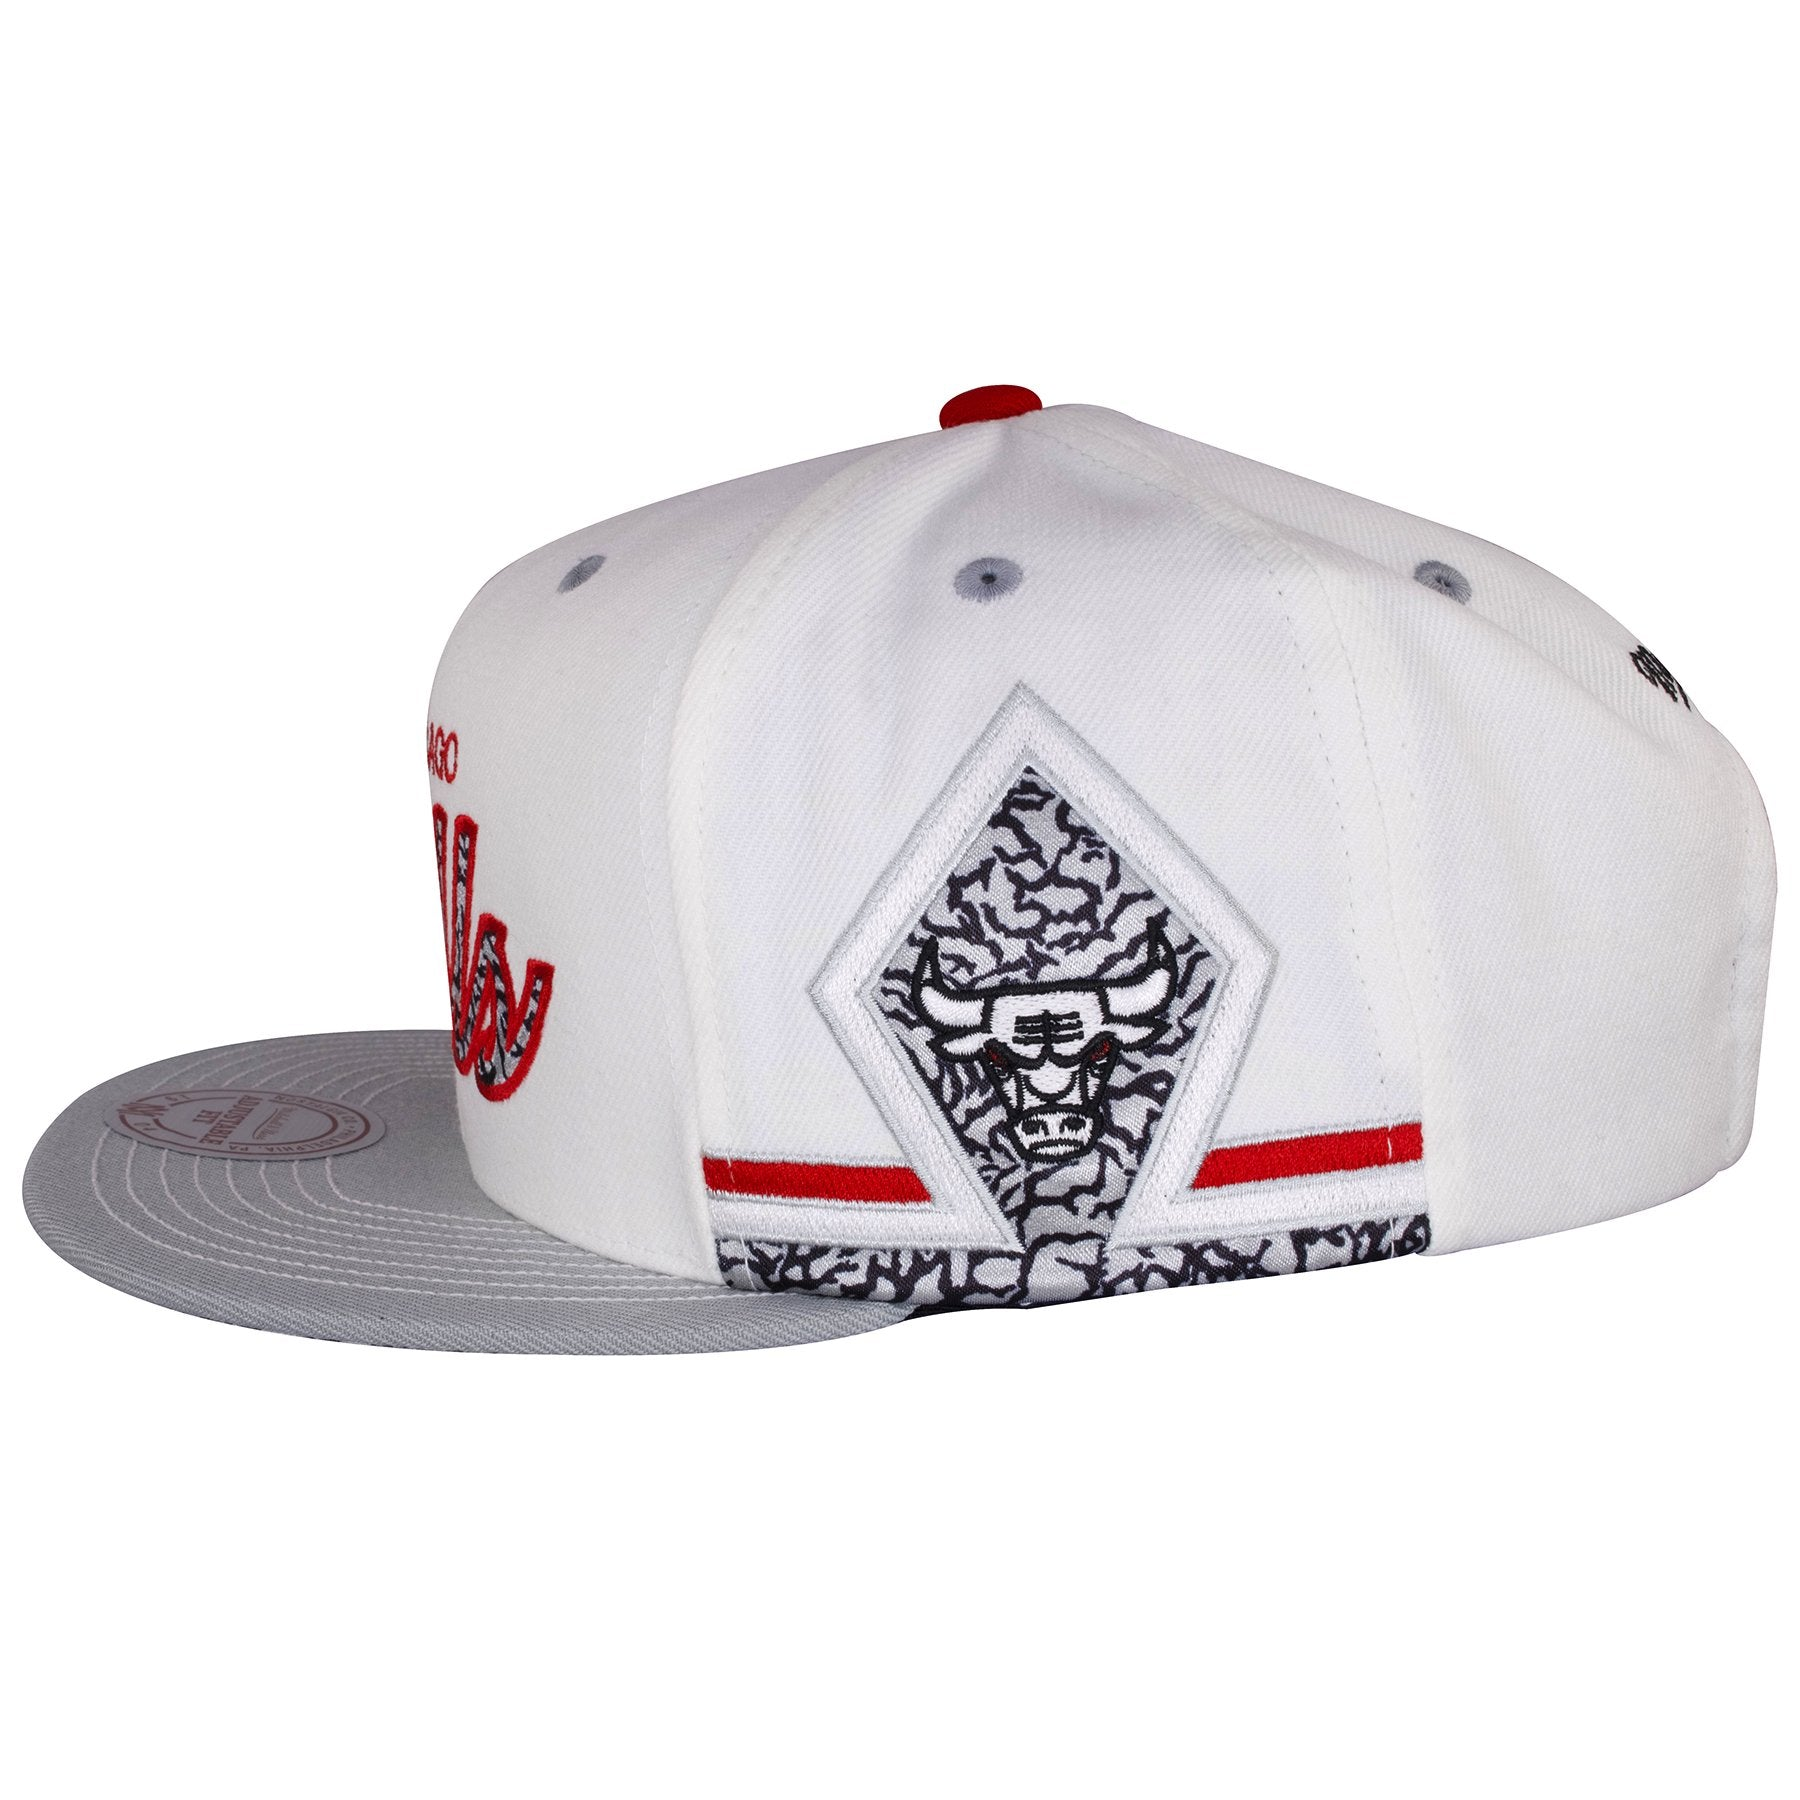 c94dc0fe892e5f ... The sides of this Chicago Bulls Air Jordan Snapback Hat shows a diamond  shape design in ...